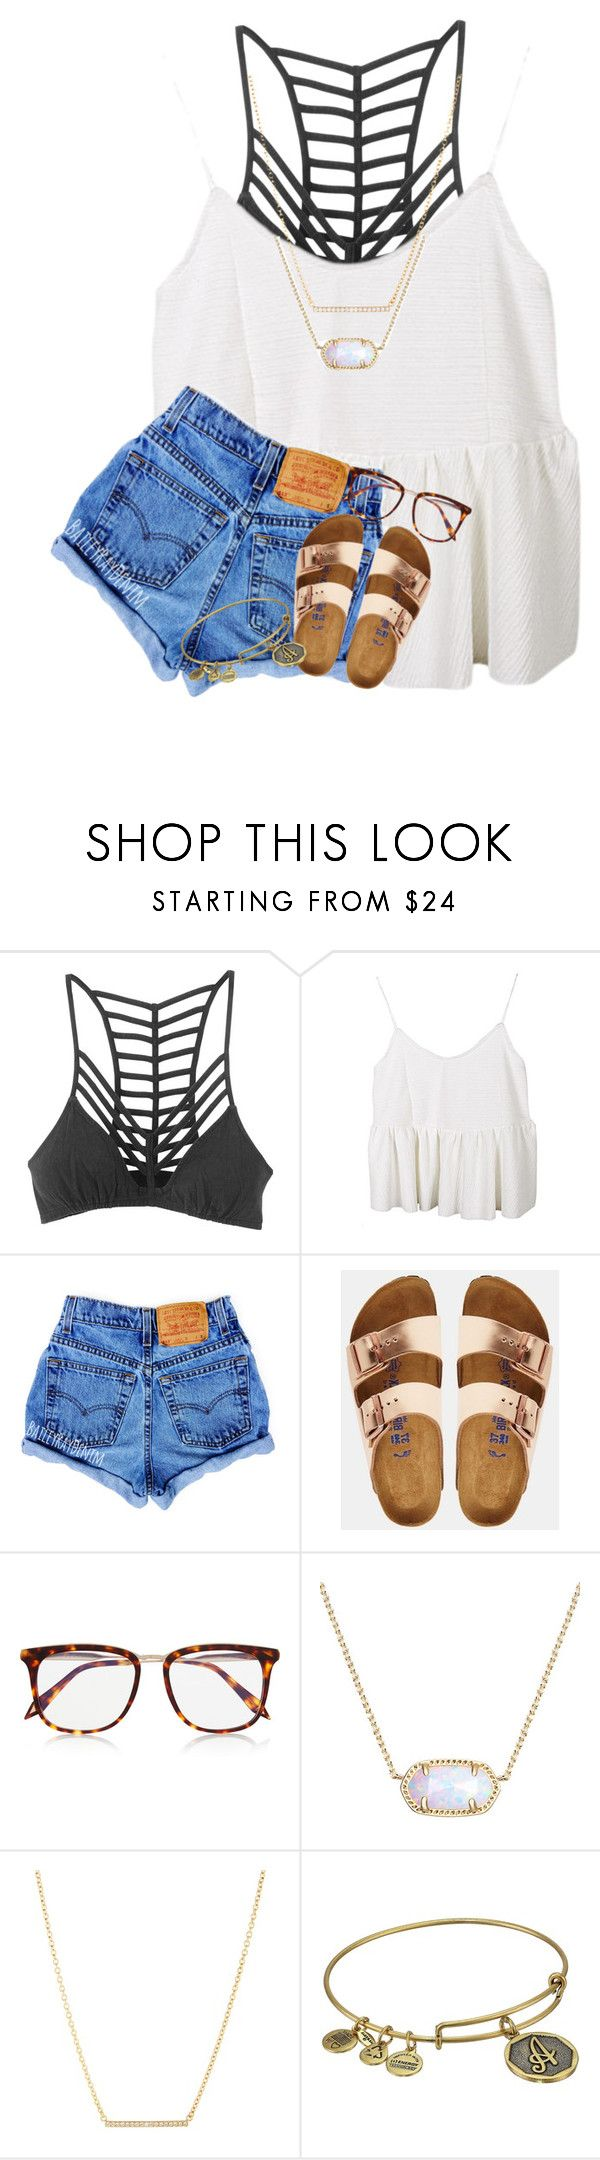 """""""&&; one of them is how bad I need ya"""" by abbypj ❤ liked on Polyvore featuring RVCA, Birkenstock, Victoria Beckham, Kendra Scott, Kate Spade and Alex and Ani"""